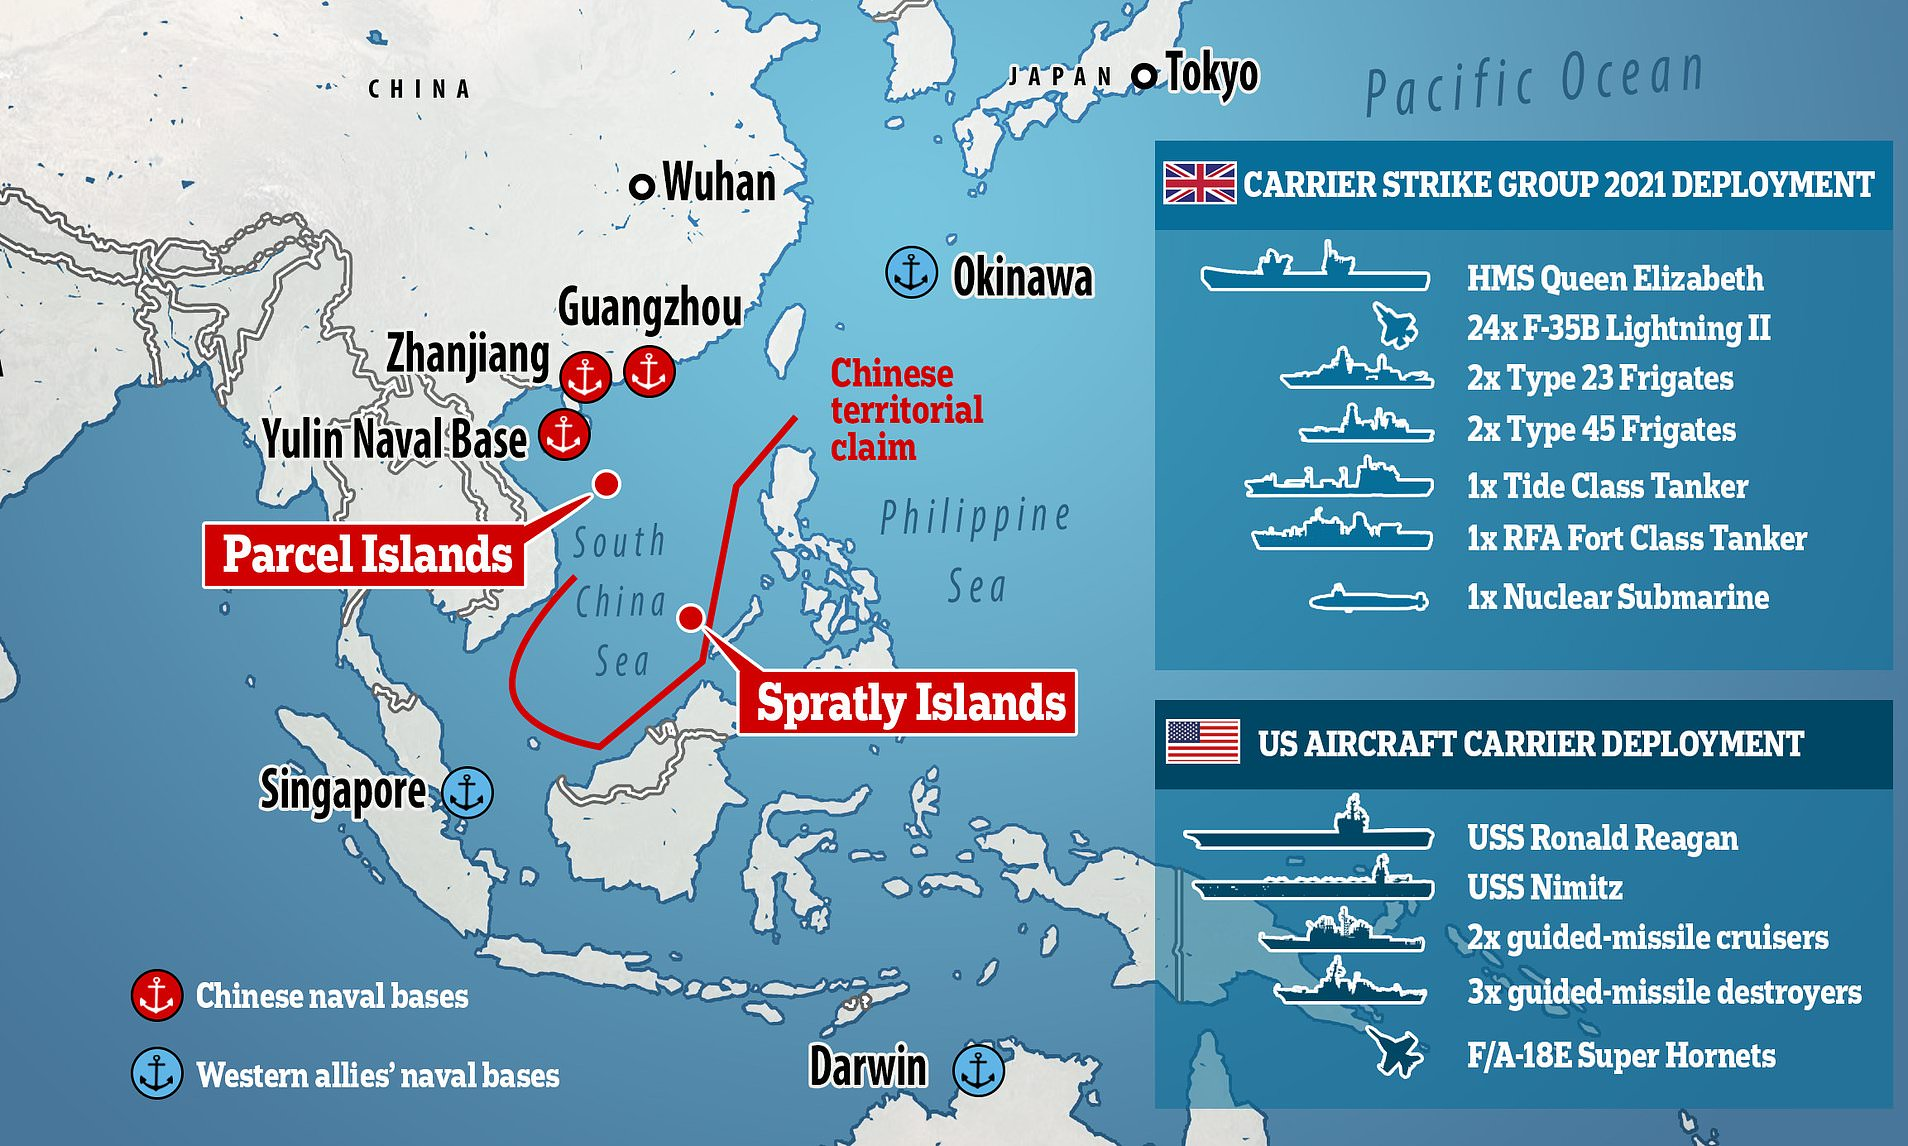 China South China Sea - South China Sea Wikipedia / Current top breaking philippine h. - goldenwood-silvermist